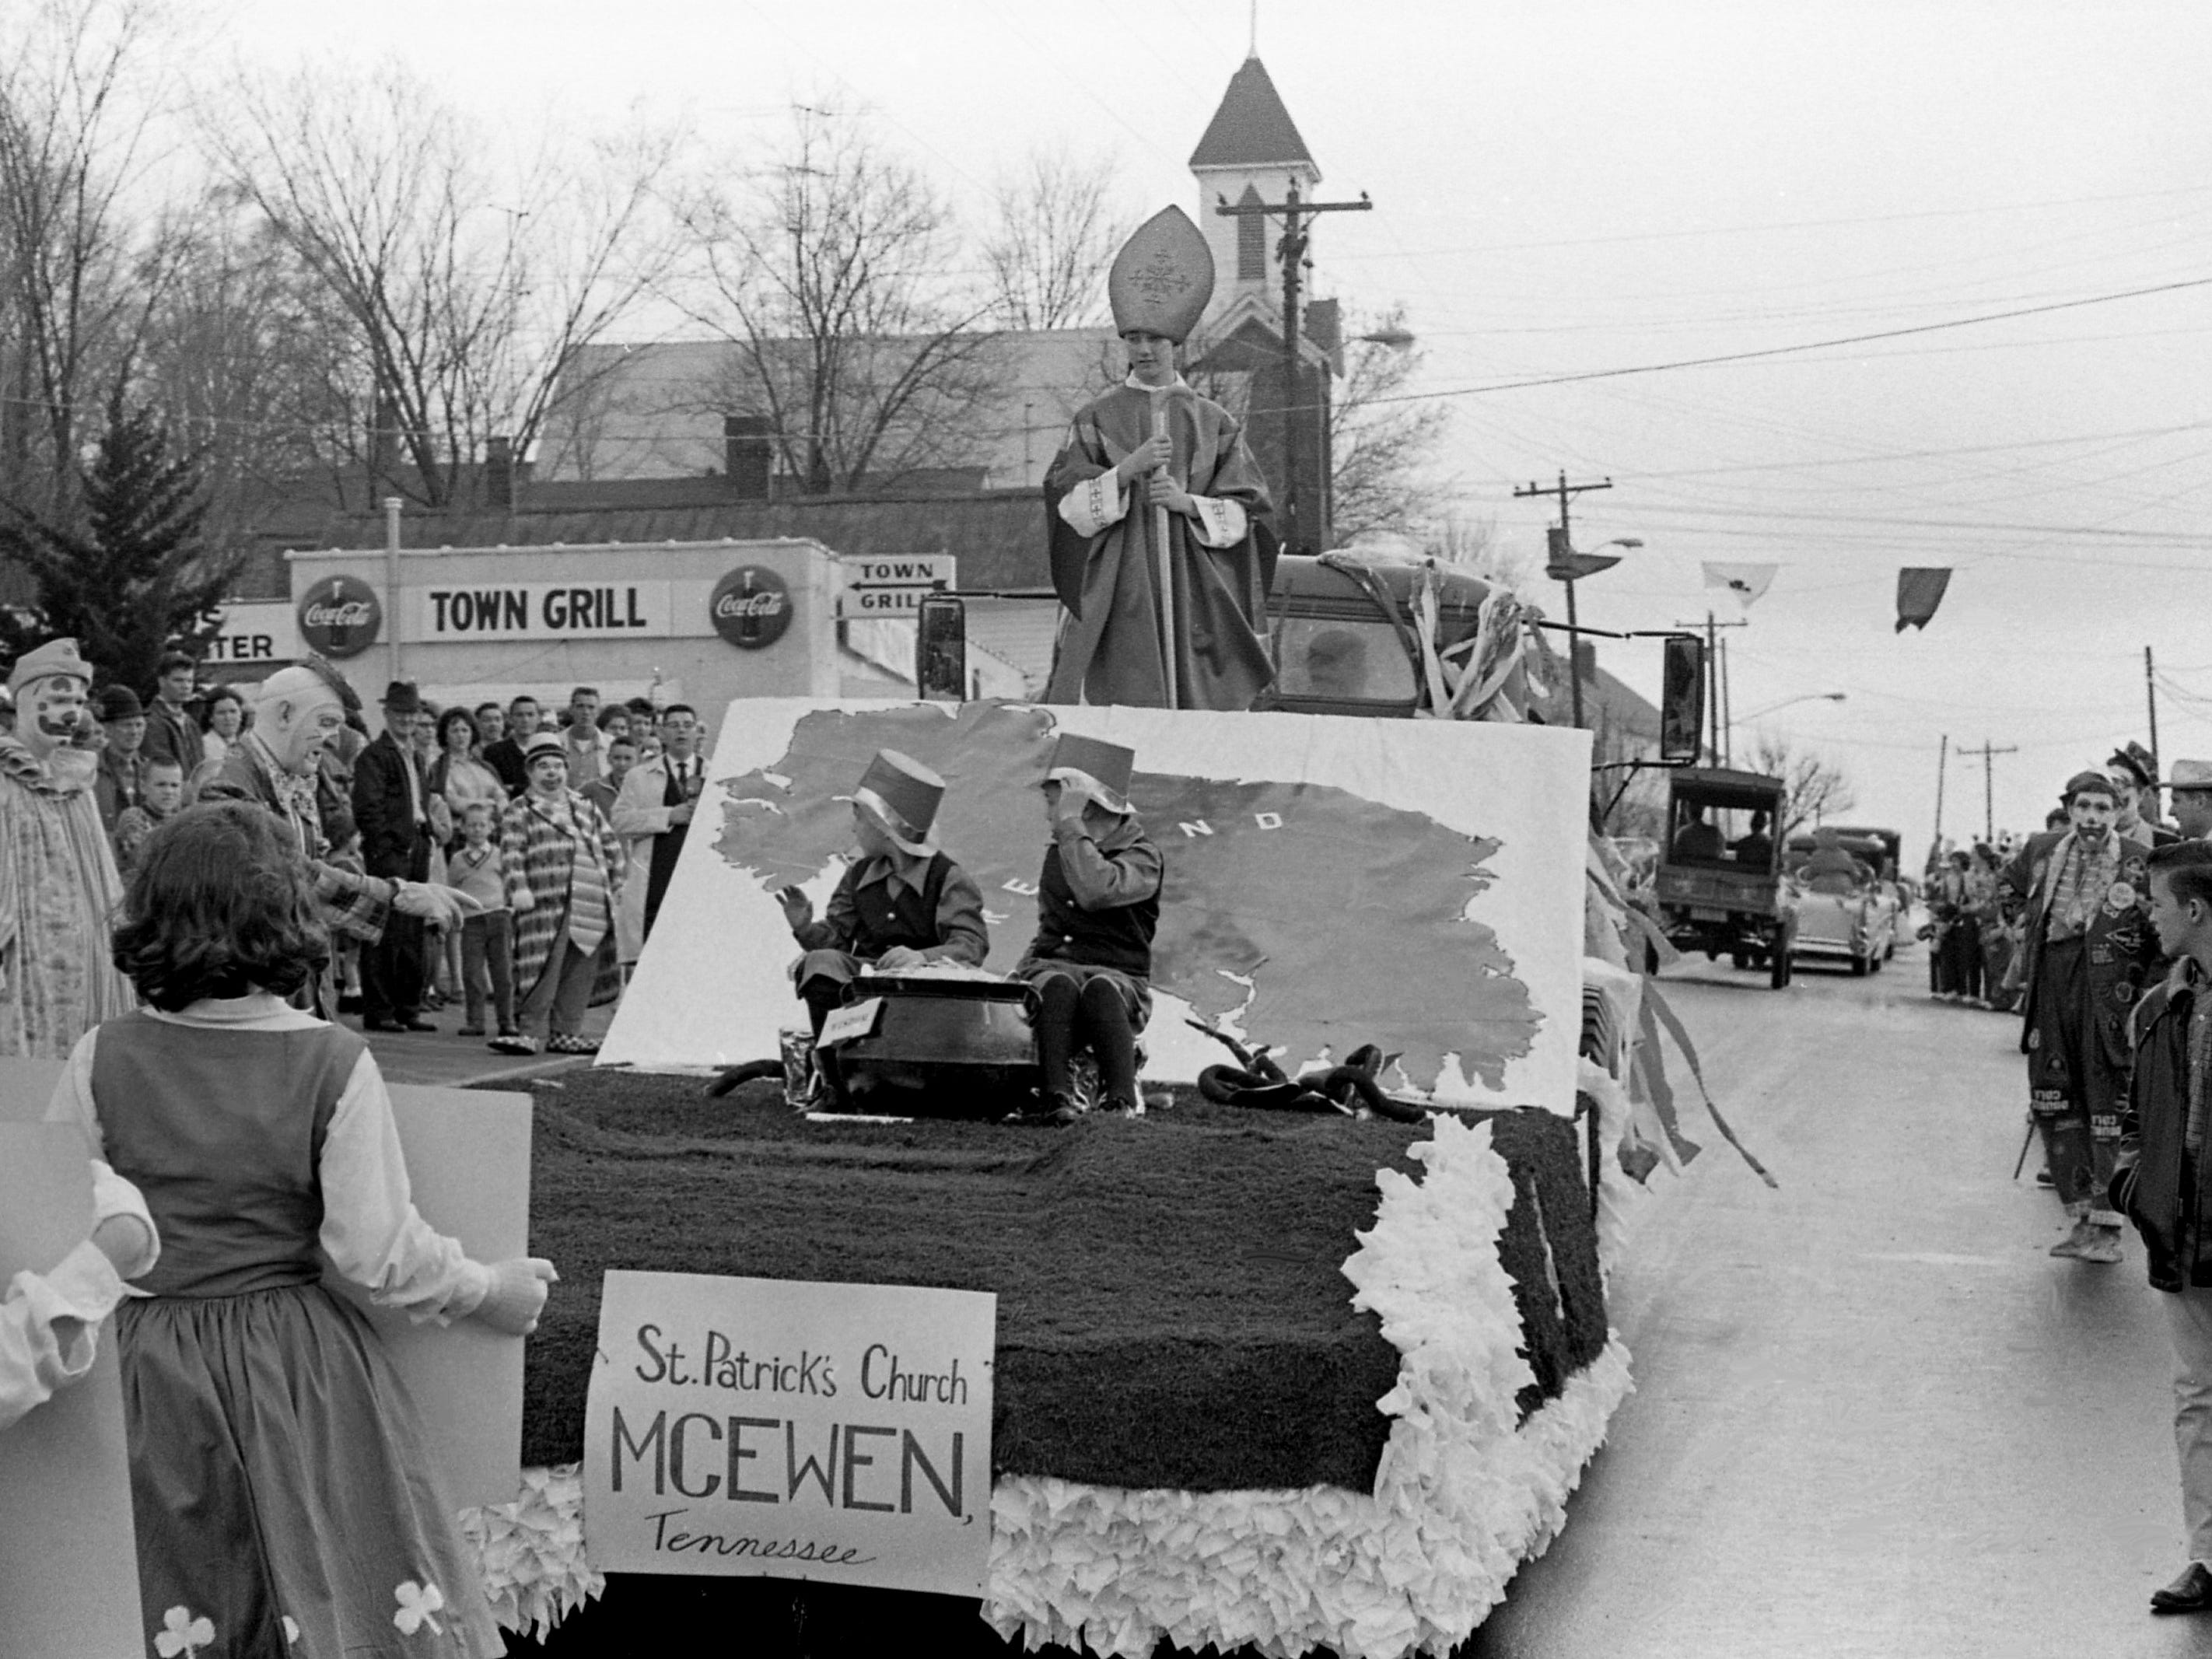 Another of the floats participating in the parade of the second annual Wearing of the Green celebration in Erin, Tenn. March 14, 1964. The population of Erin is 958.